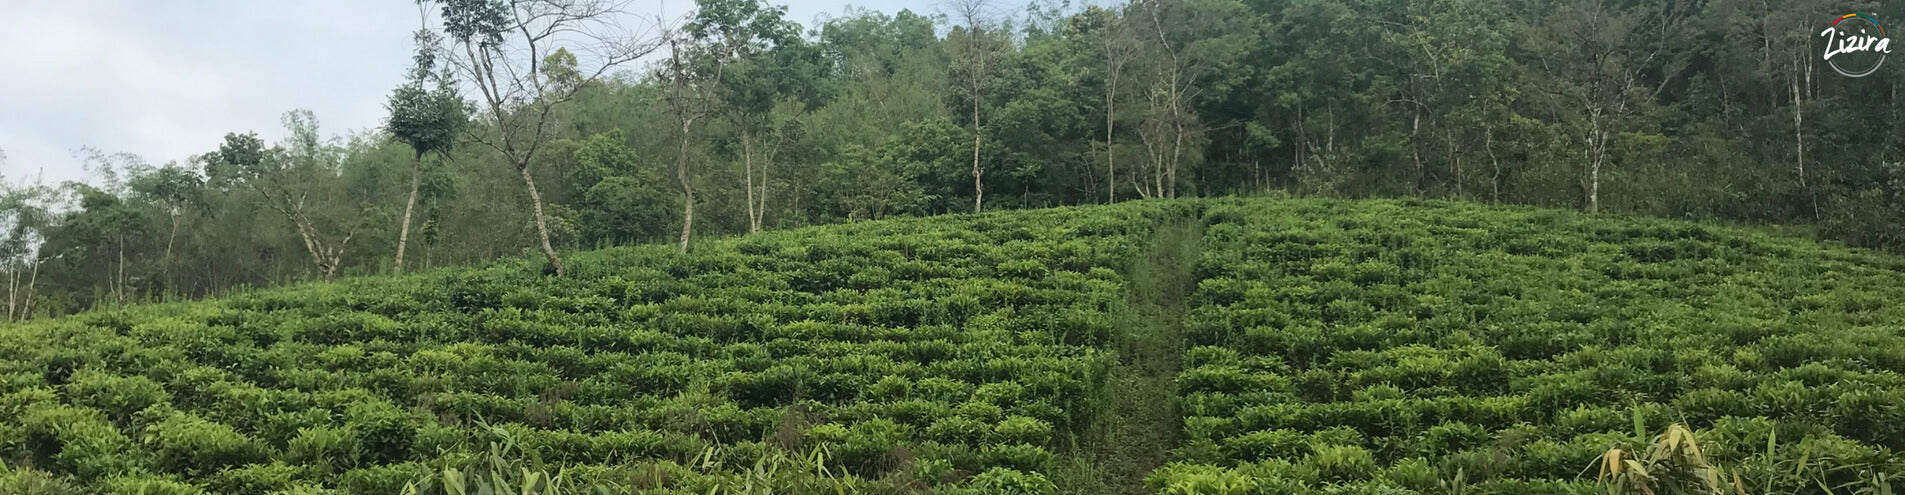 The Journey of a Tea Farm Owner | Zizira